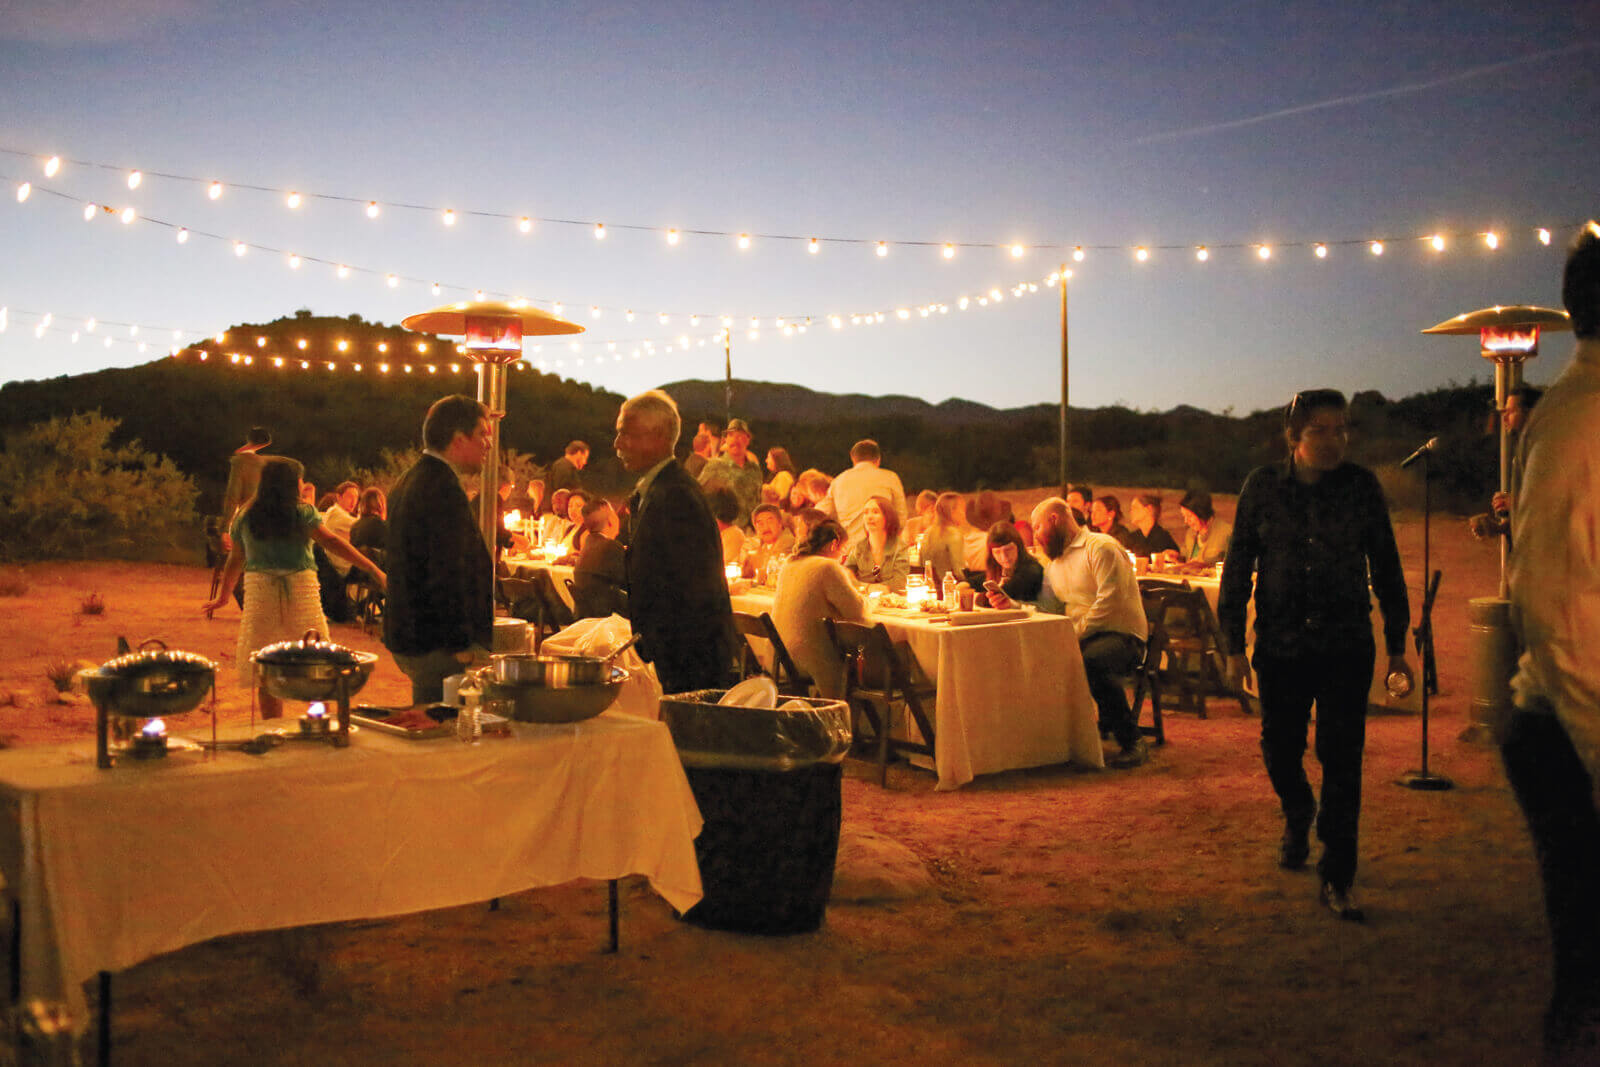 Events at High Desert Eden - Pioneertown, California, United States | vacation home rentals